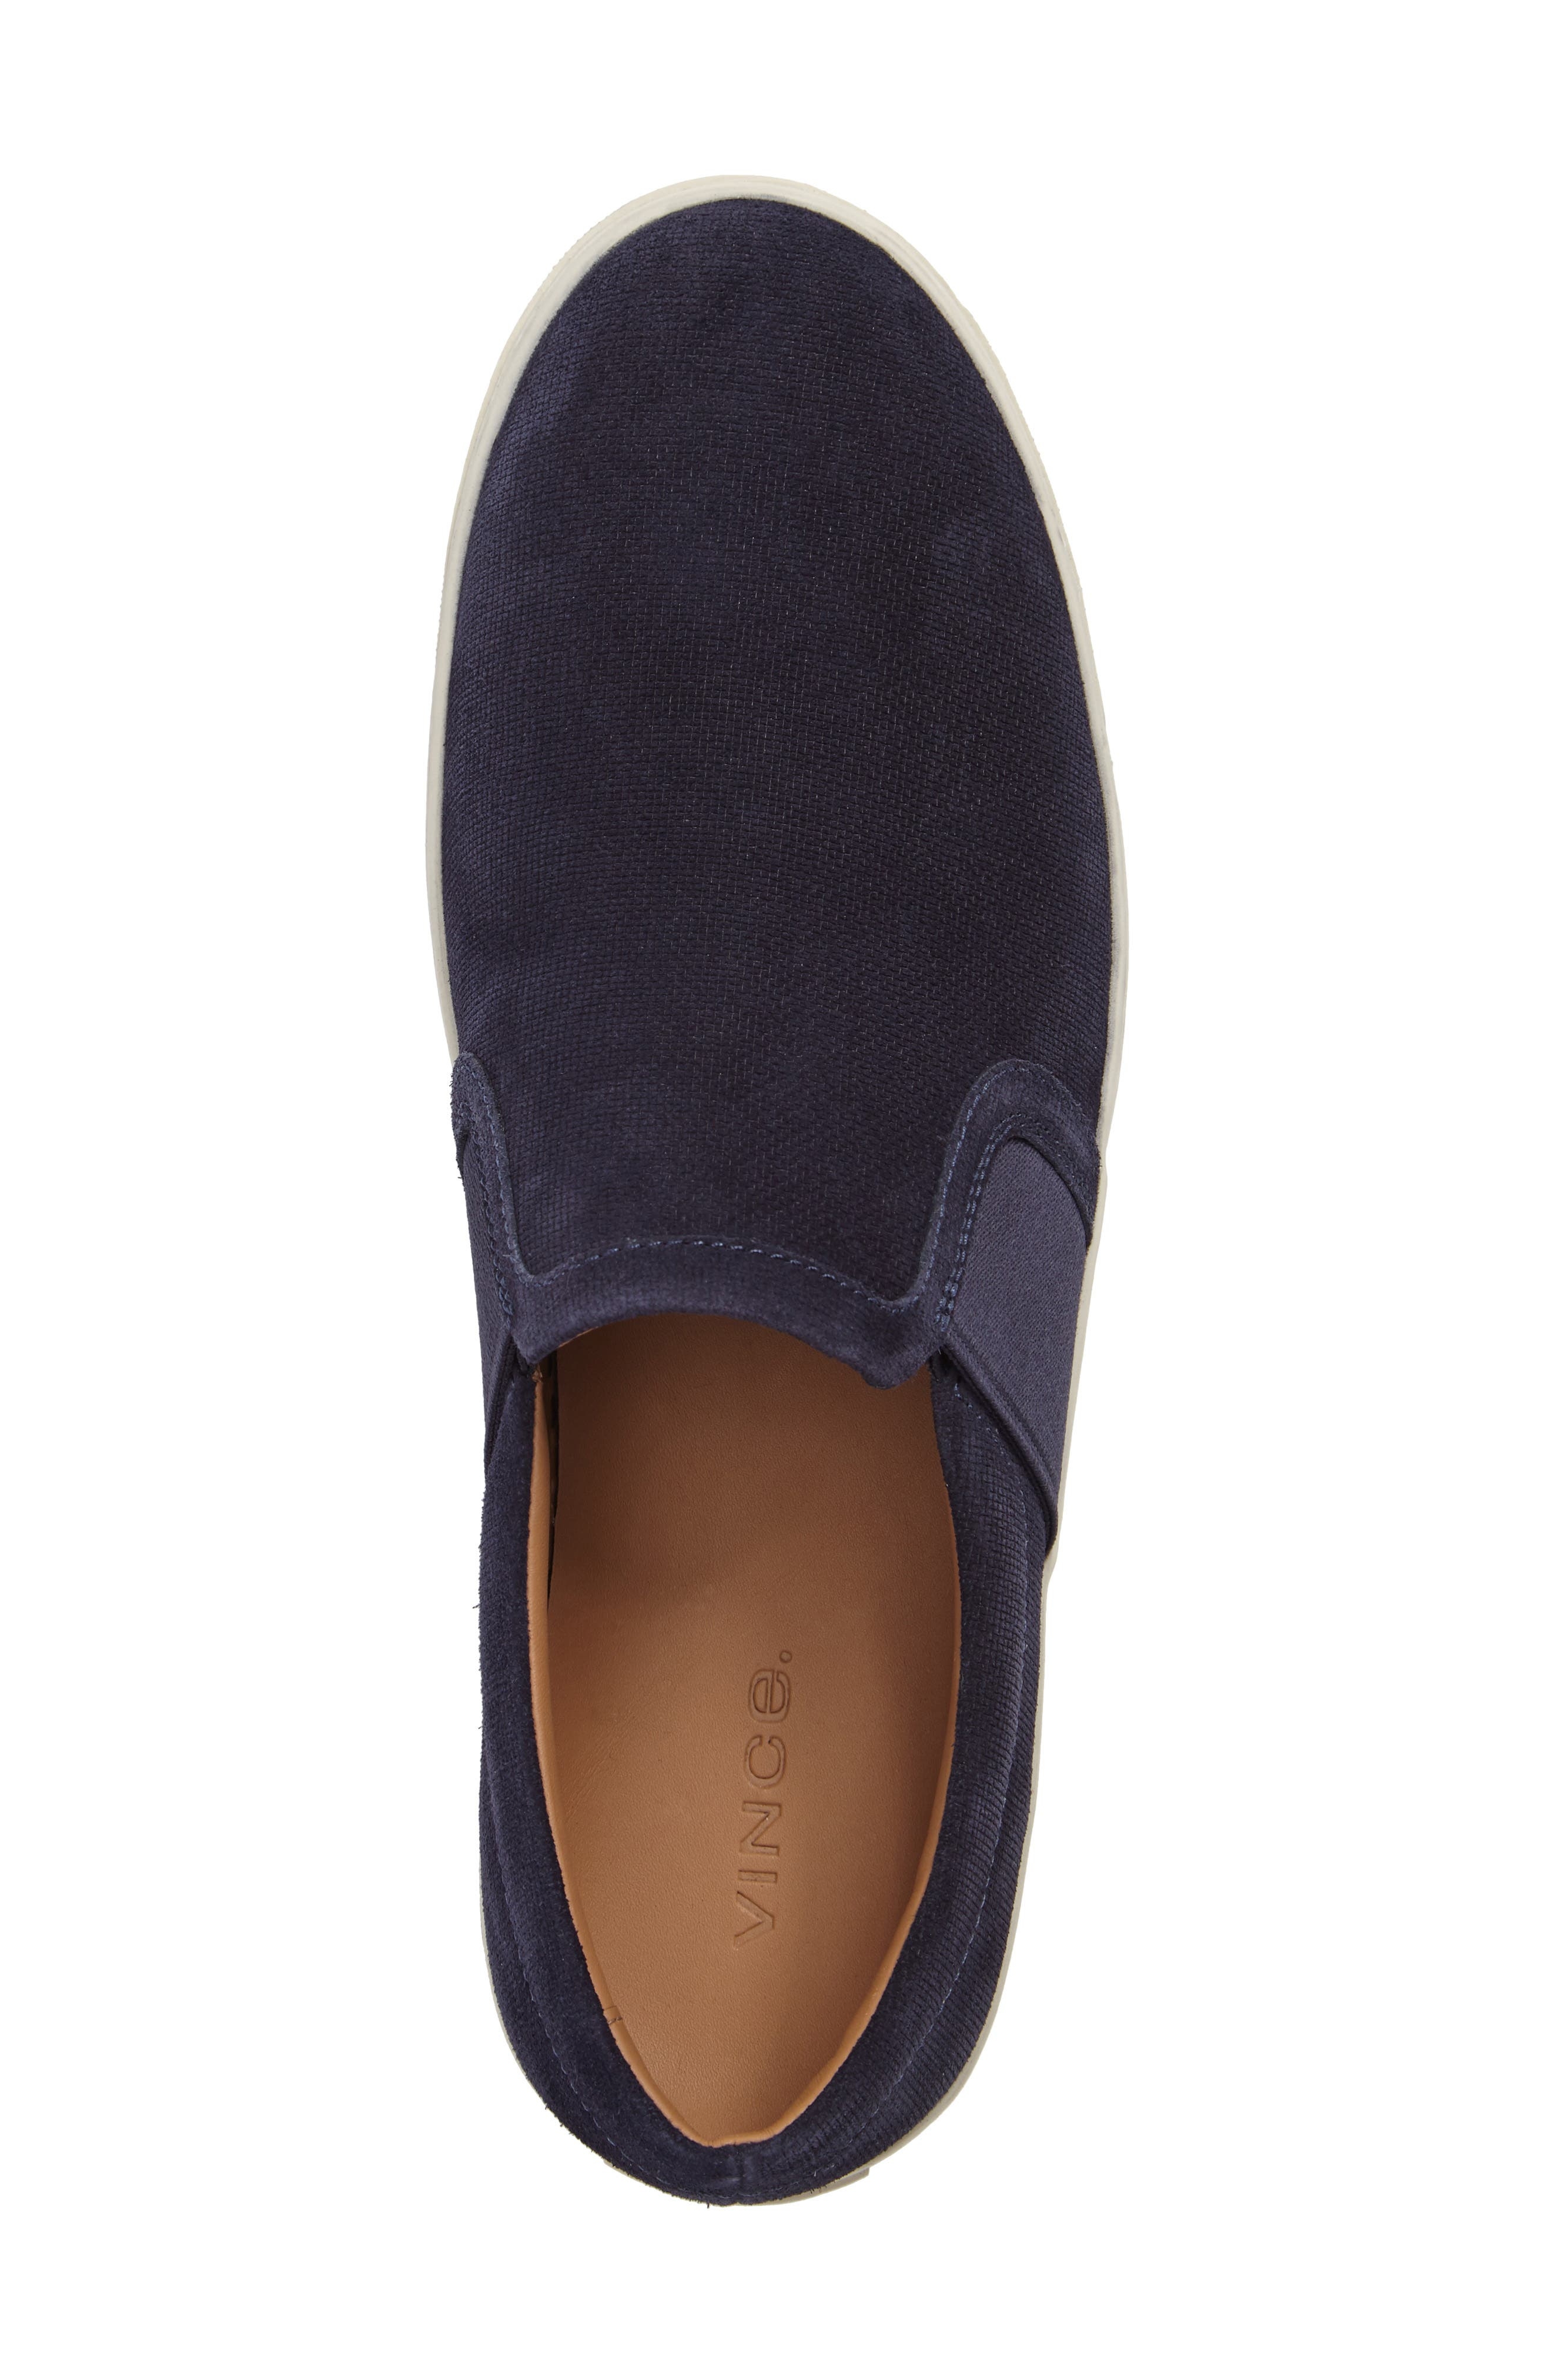 Adler Slip-On,                             Alternate thumbnail 5, color,                             Coastal Suede